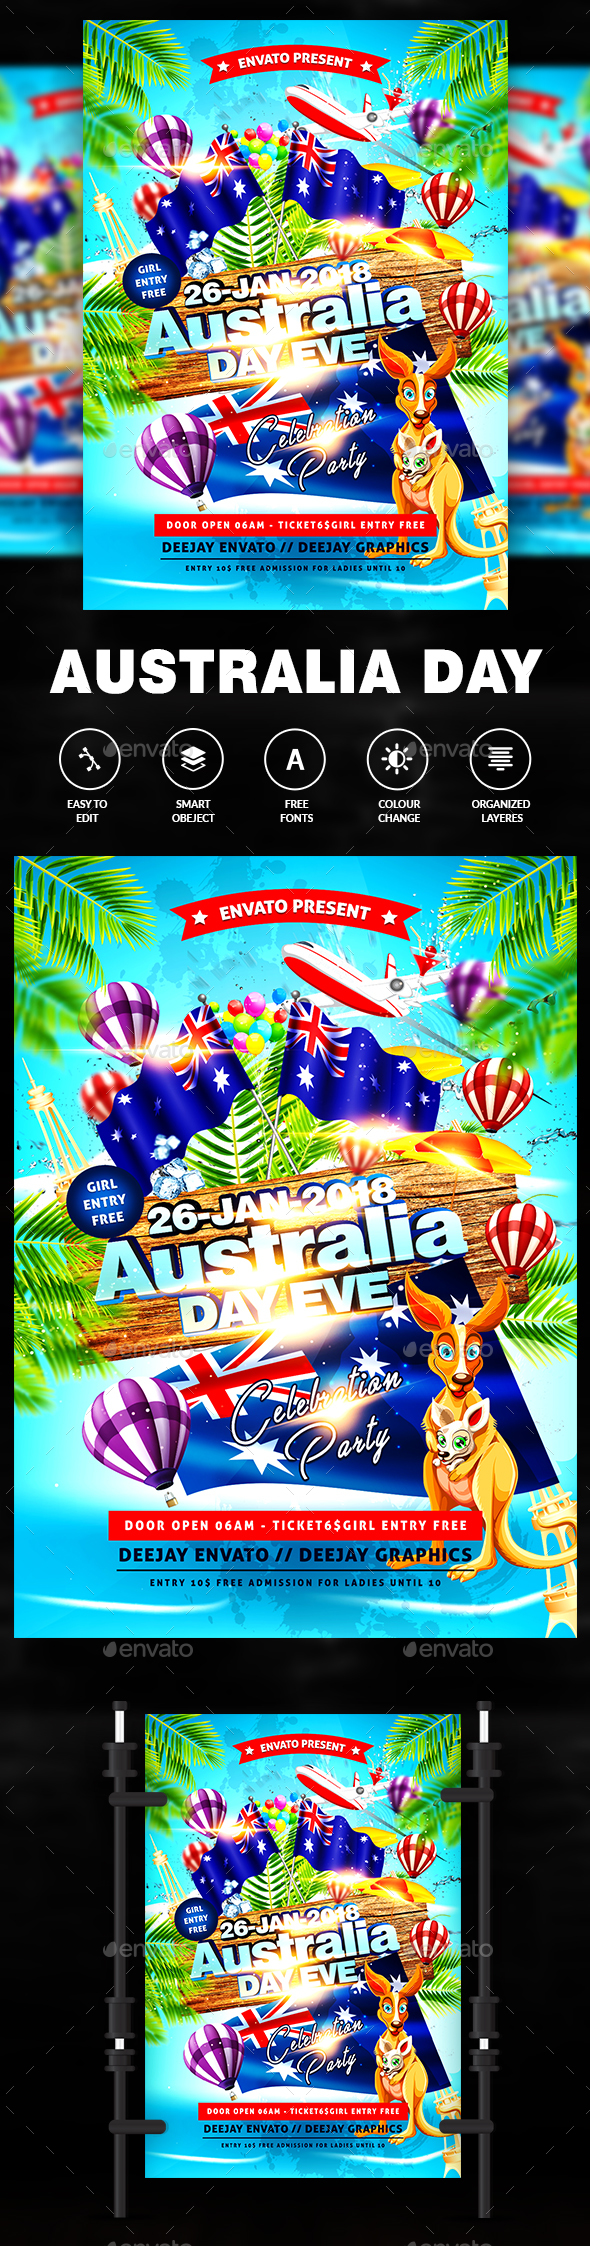 Australia Day Flyer - Flyers Print Templates